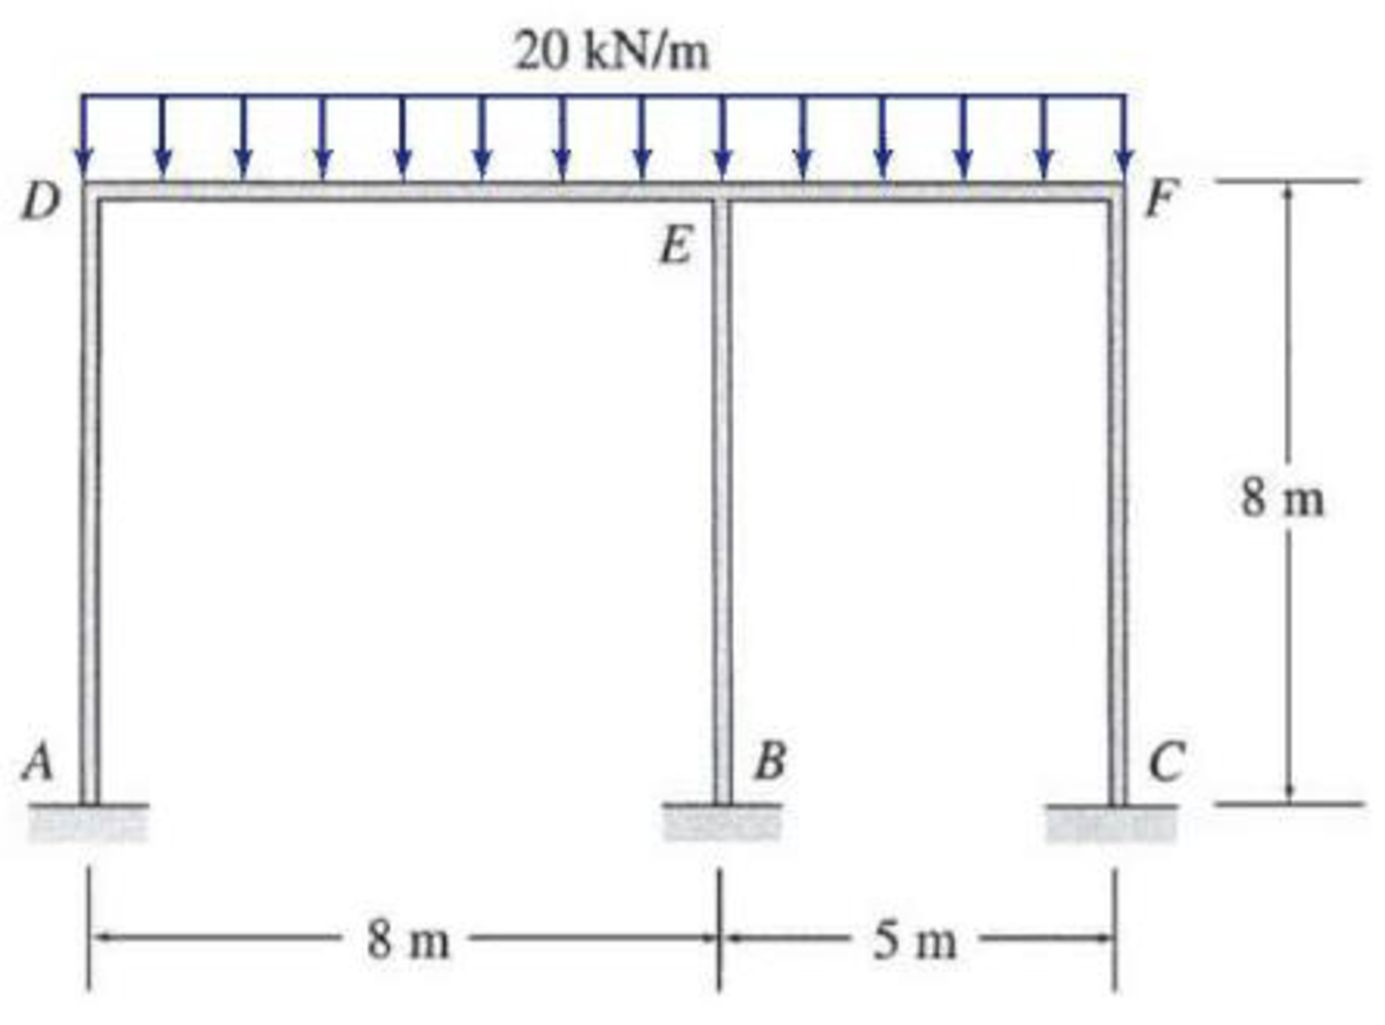 Chapter 12, Problem 3P, 12.1 through 12.5 Draw the approximate shear and bending moment diagrams for the girders of the